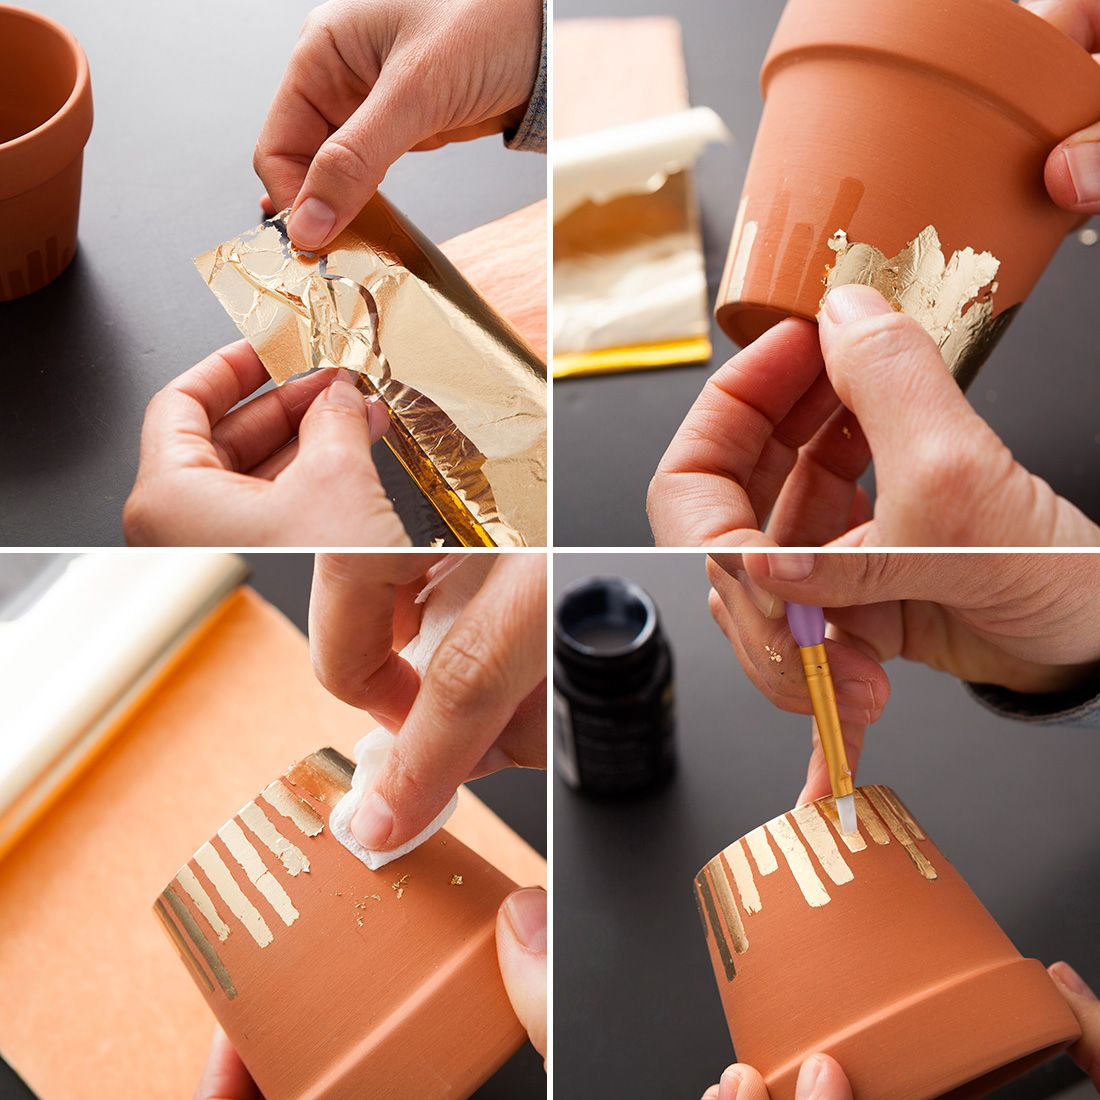 Use gold leaf to deck out flower pots with this step by step tutorial.